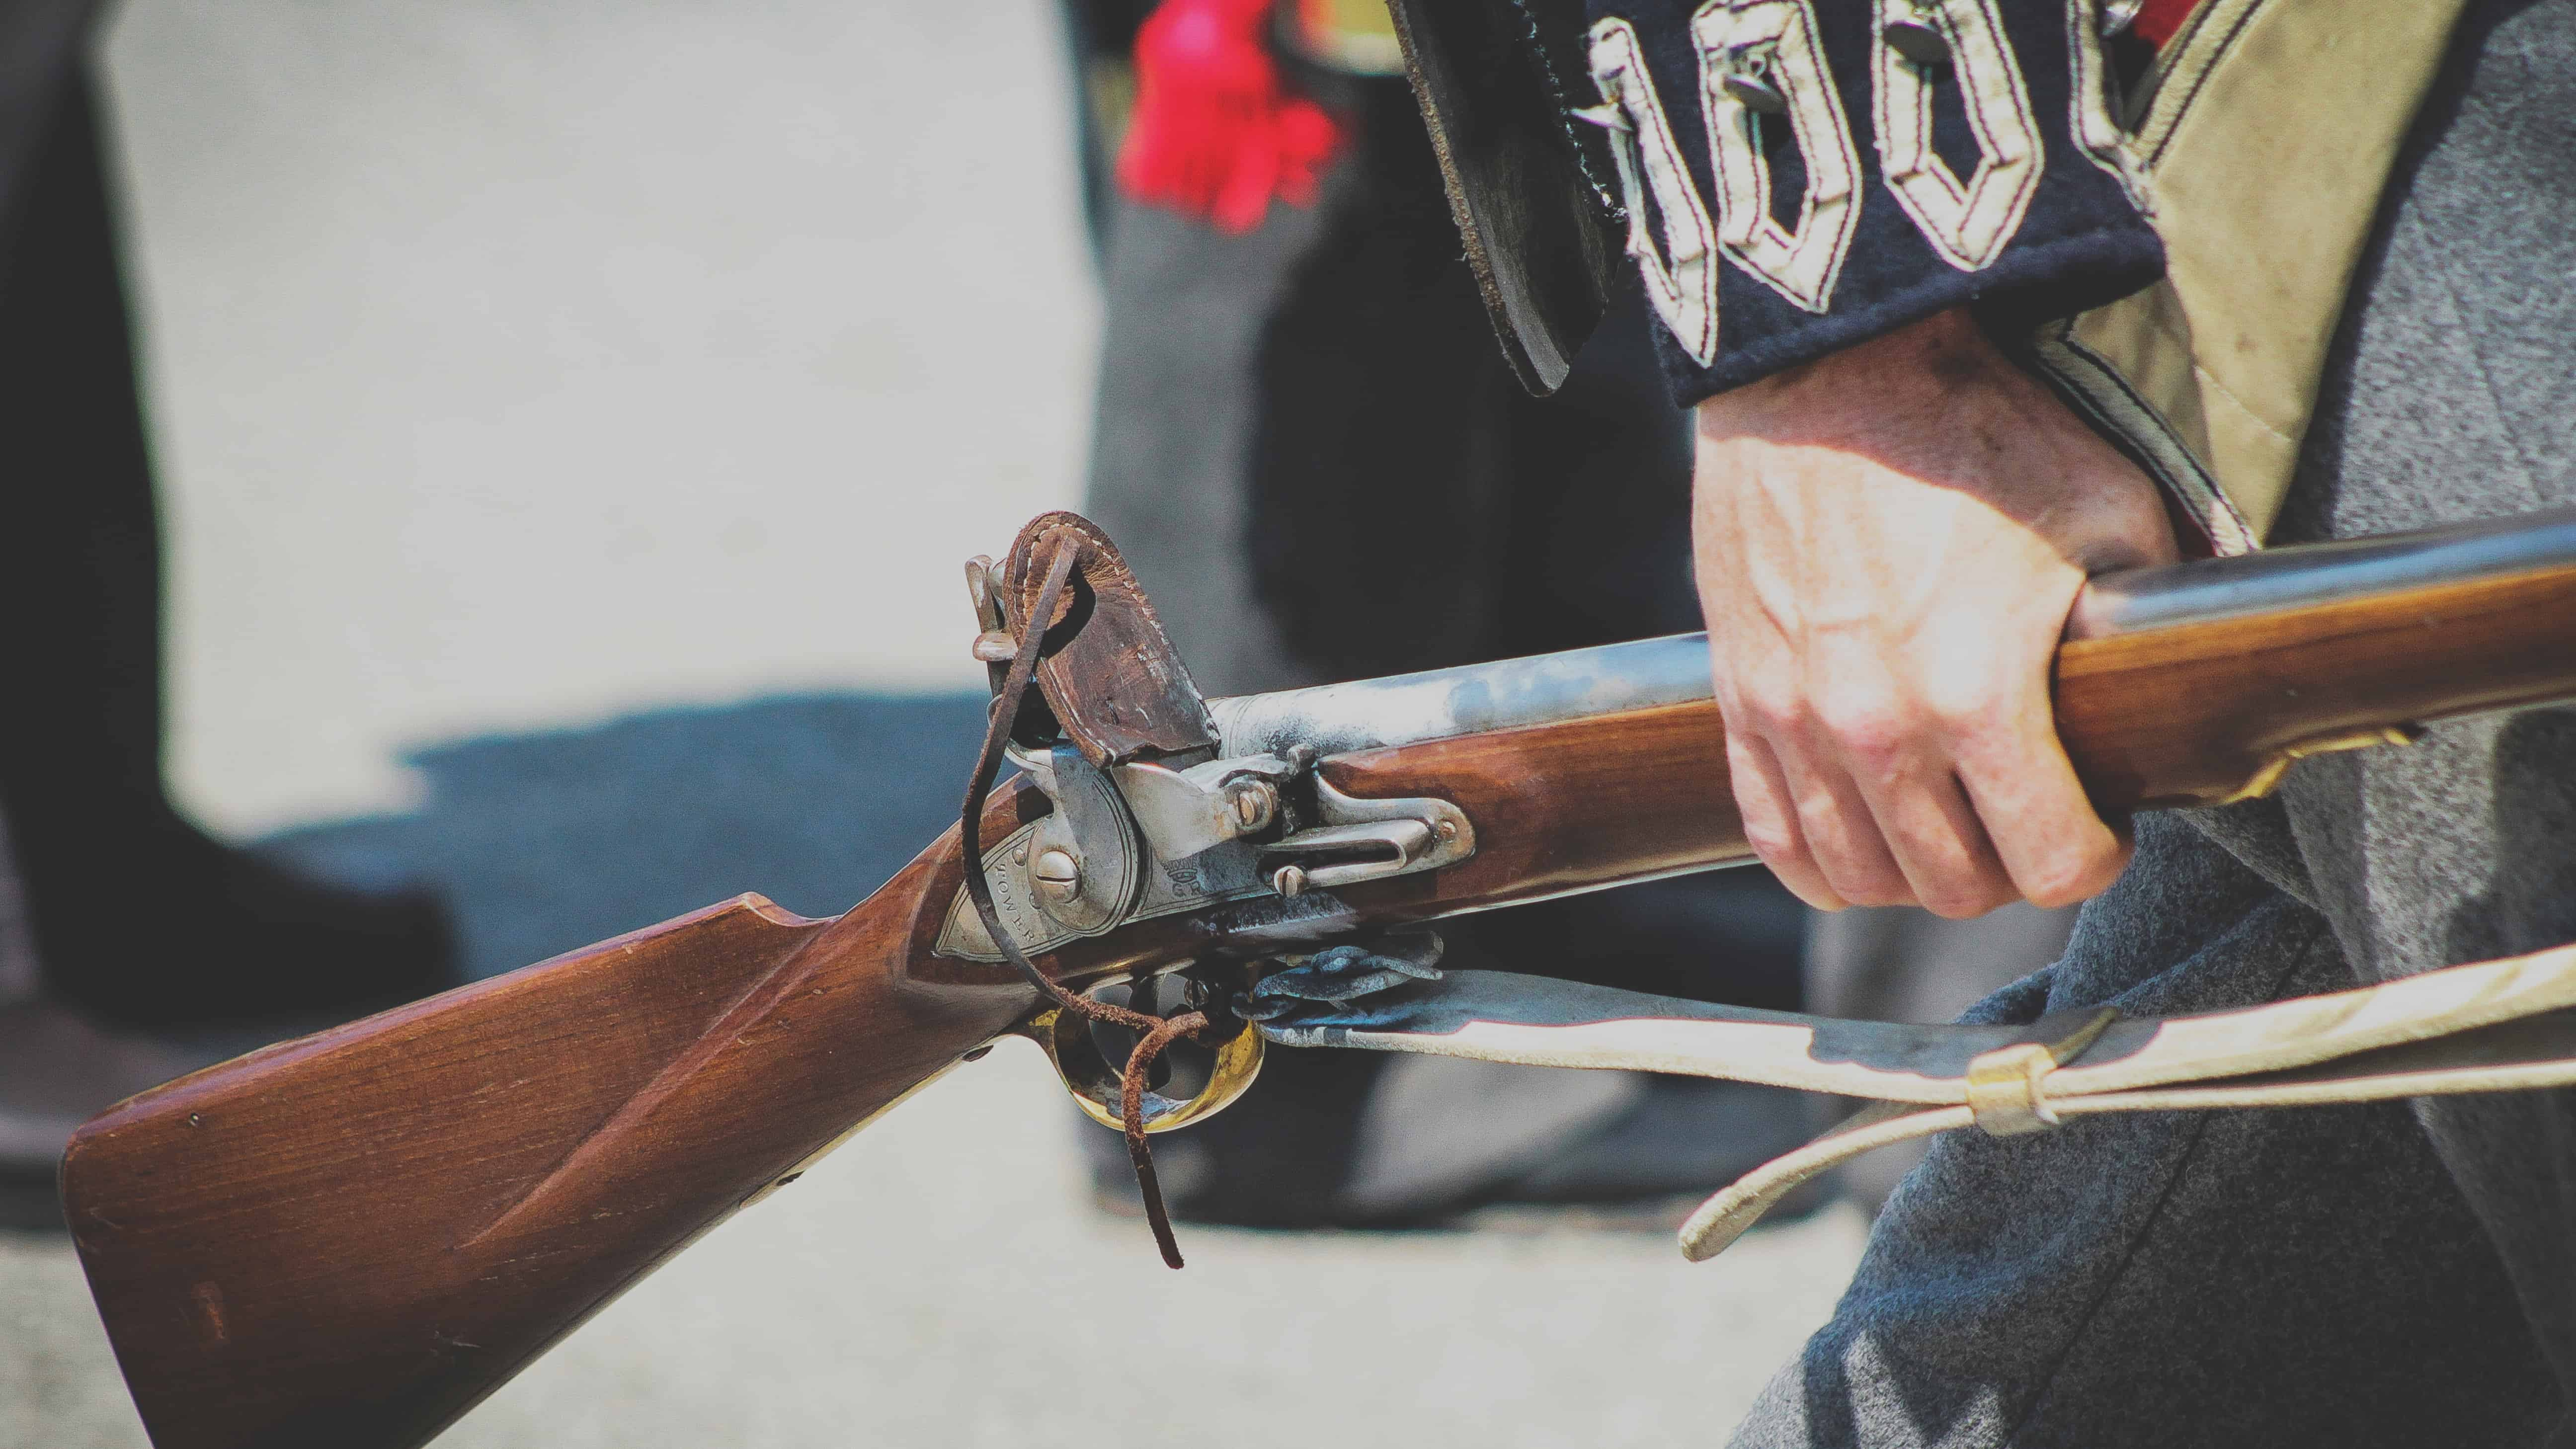 EBONY Attitudes: Police Brutality and Gun Violence in African-American Communities